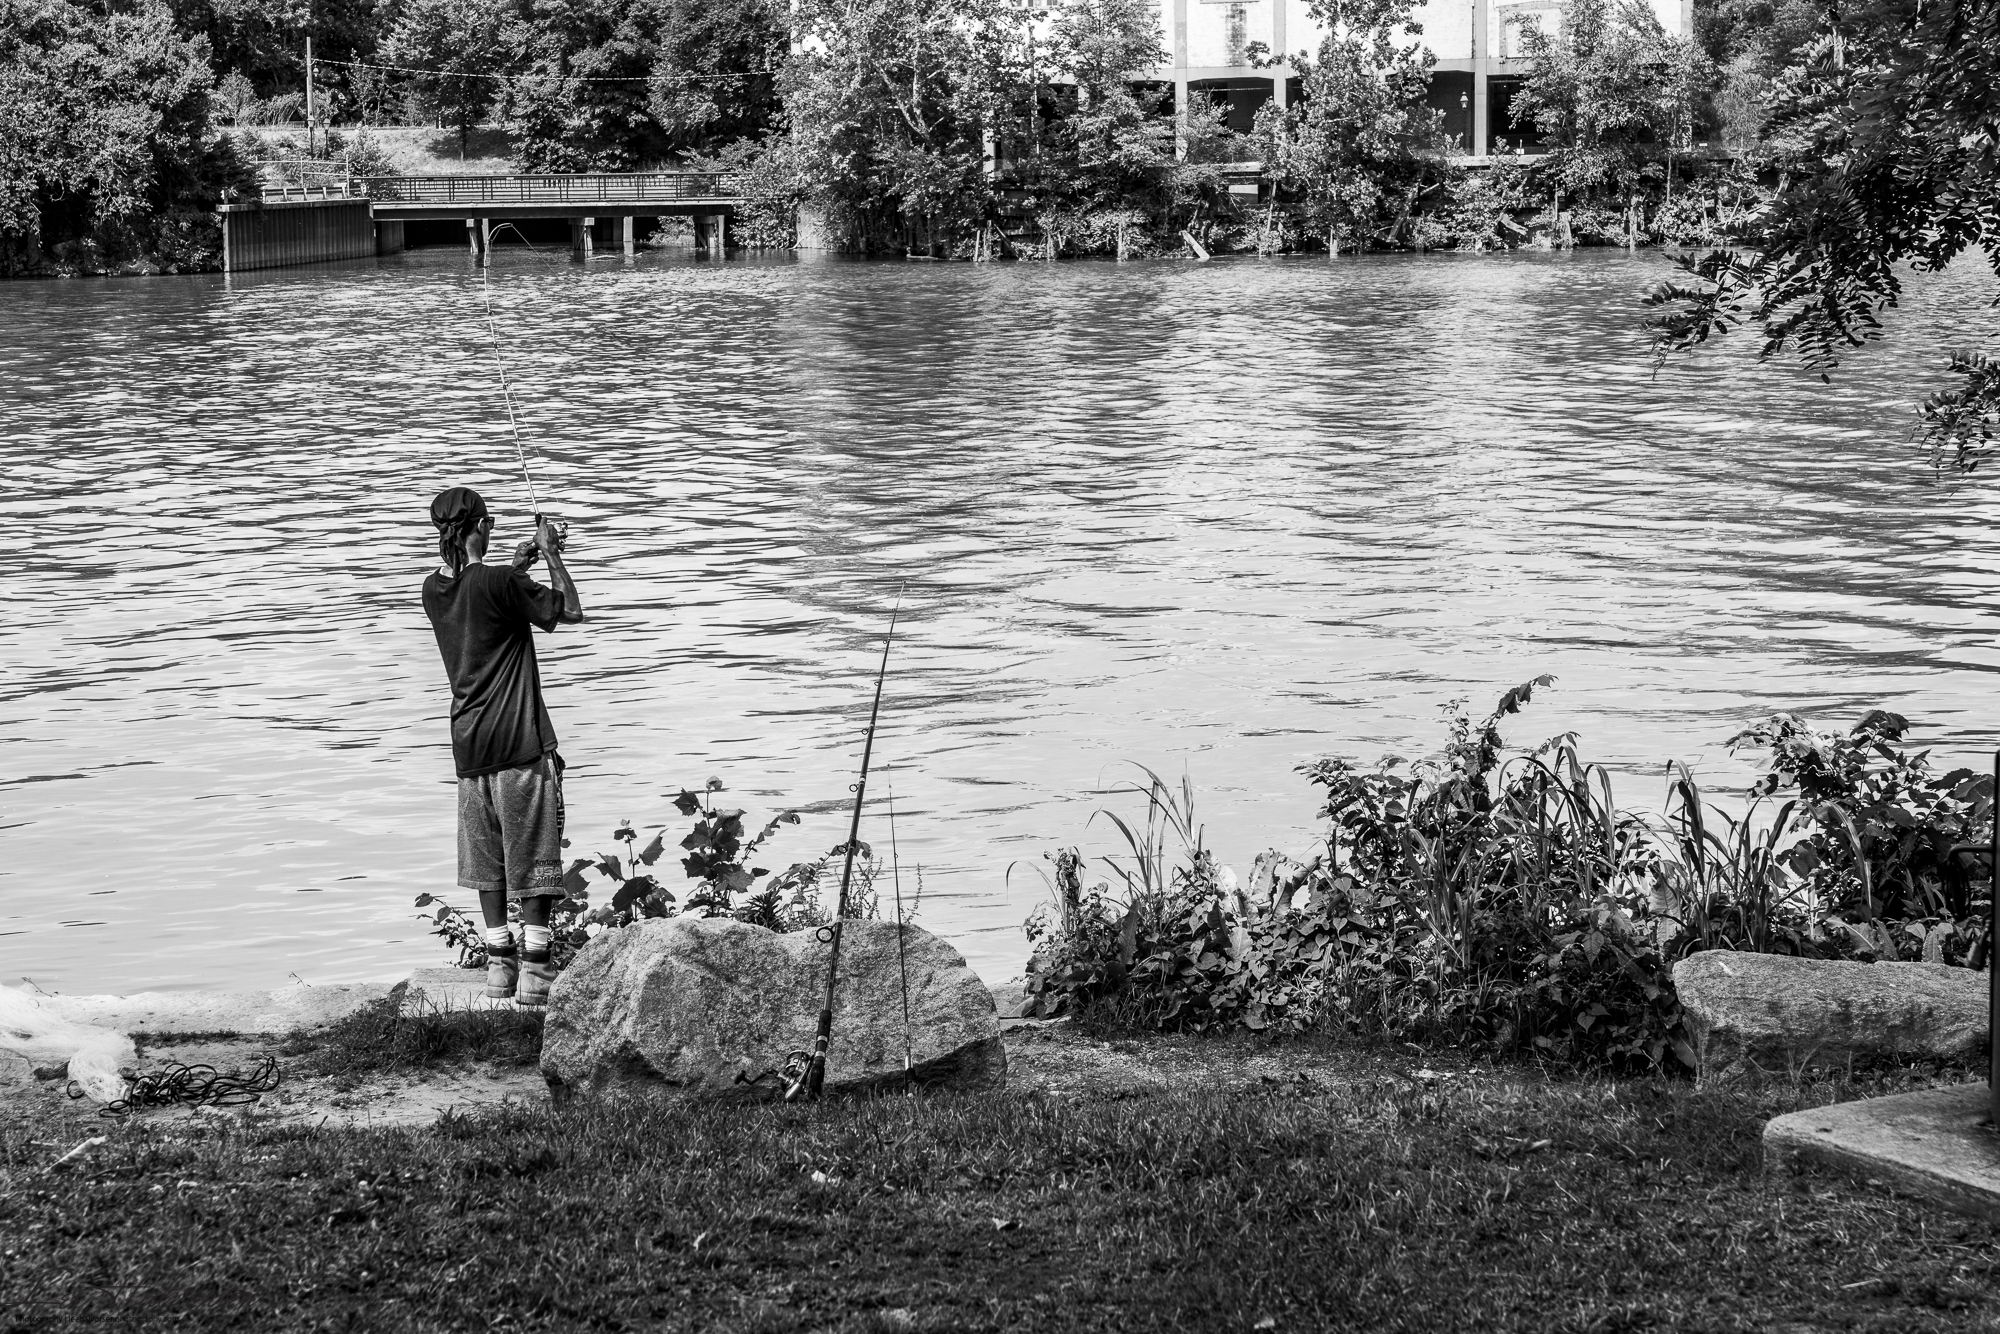 Fisherman on the site of the former Manchester Docks, Richmond, VA